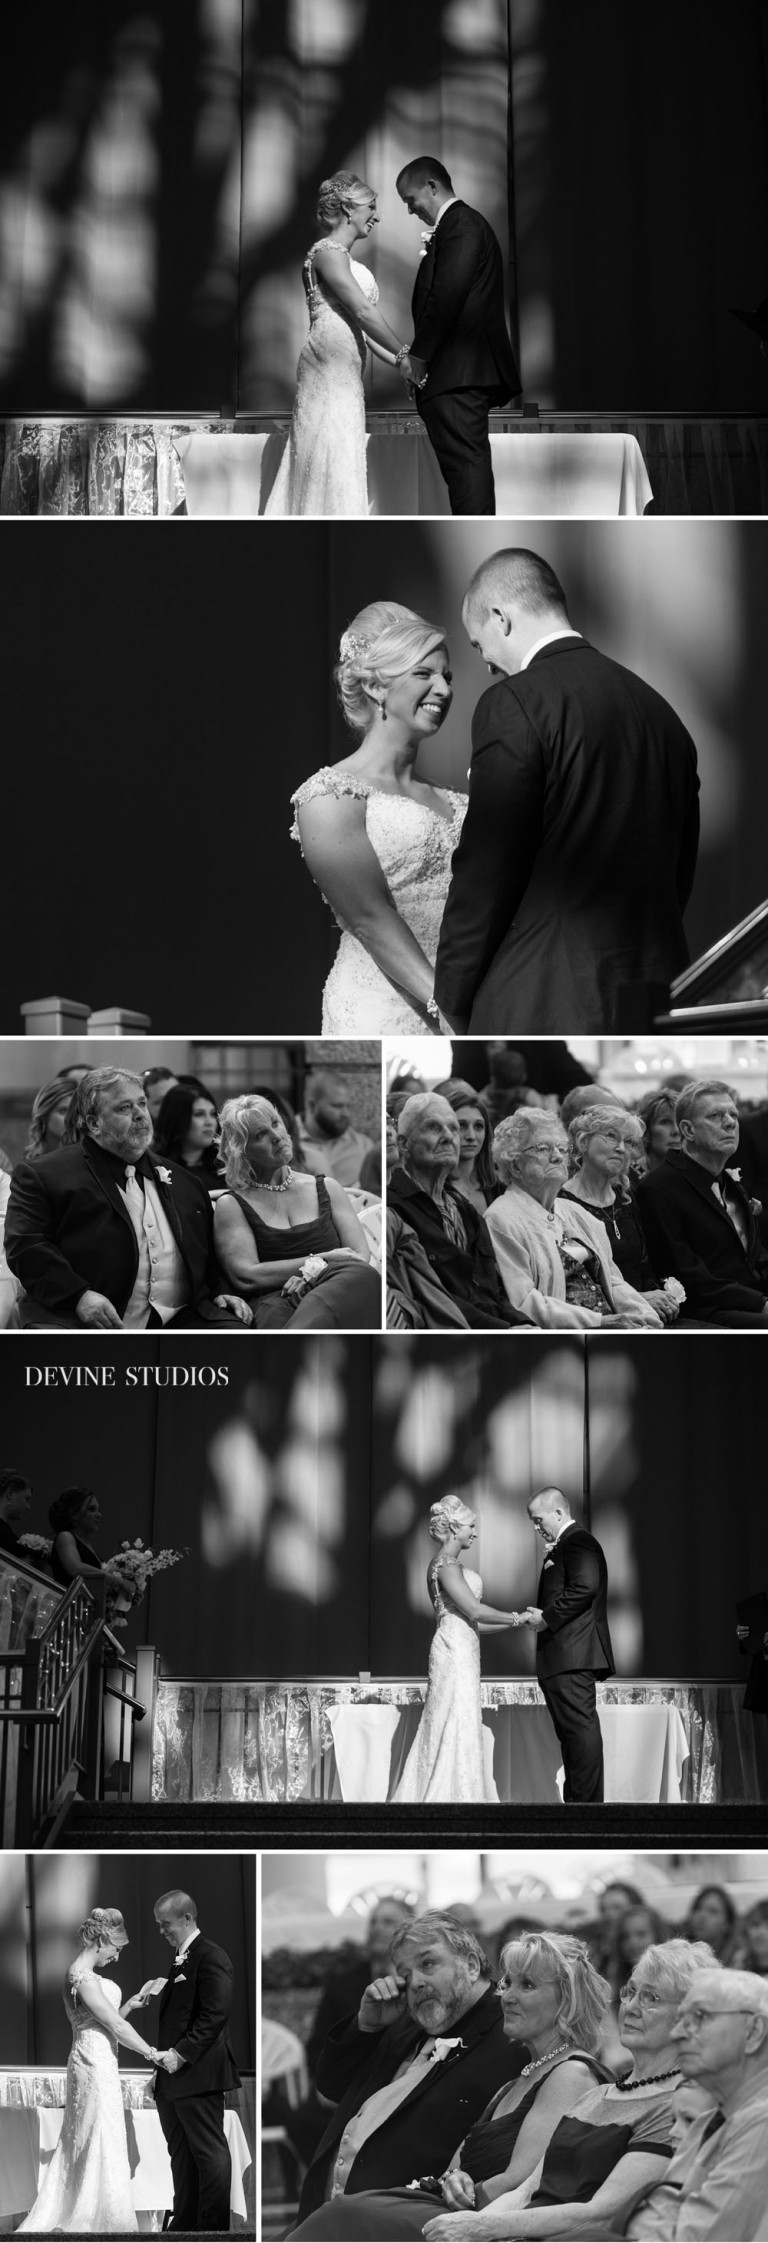 http://devinestudios.com/boudoir/wp-content/uploads/2016/05/10-839-post/Kansas-City-Wedding-Photography-Town-Pavilion-photojournalist-photographers11-768x2243.jpg